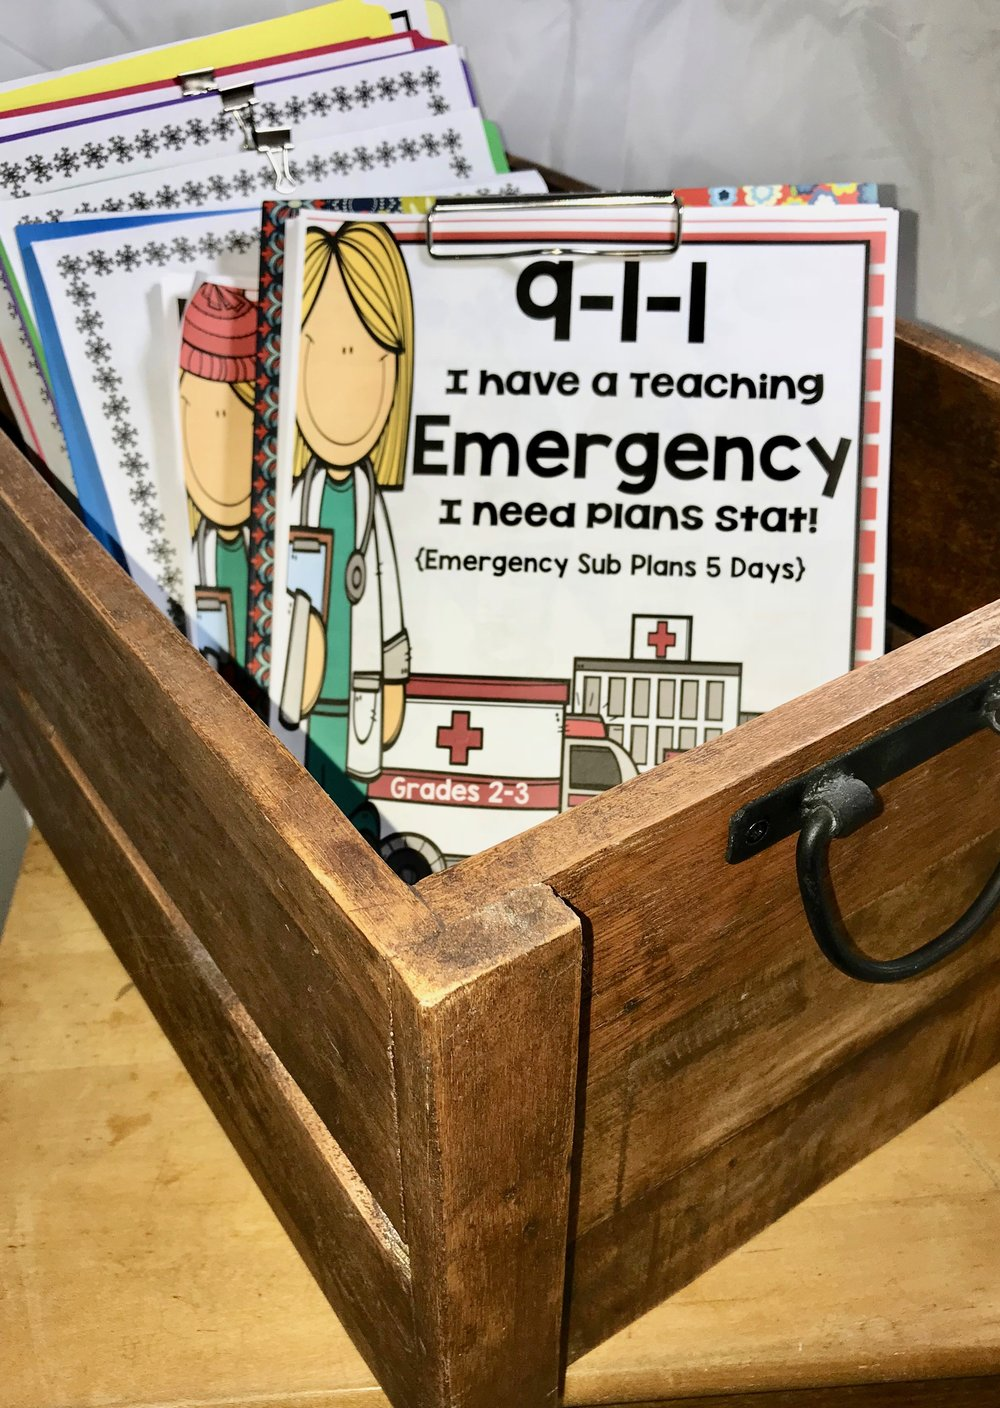 Wooden box from TJMaxx with Emergency Sub Plans